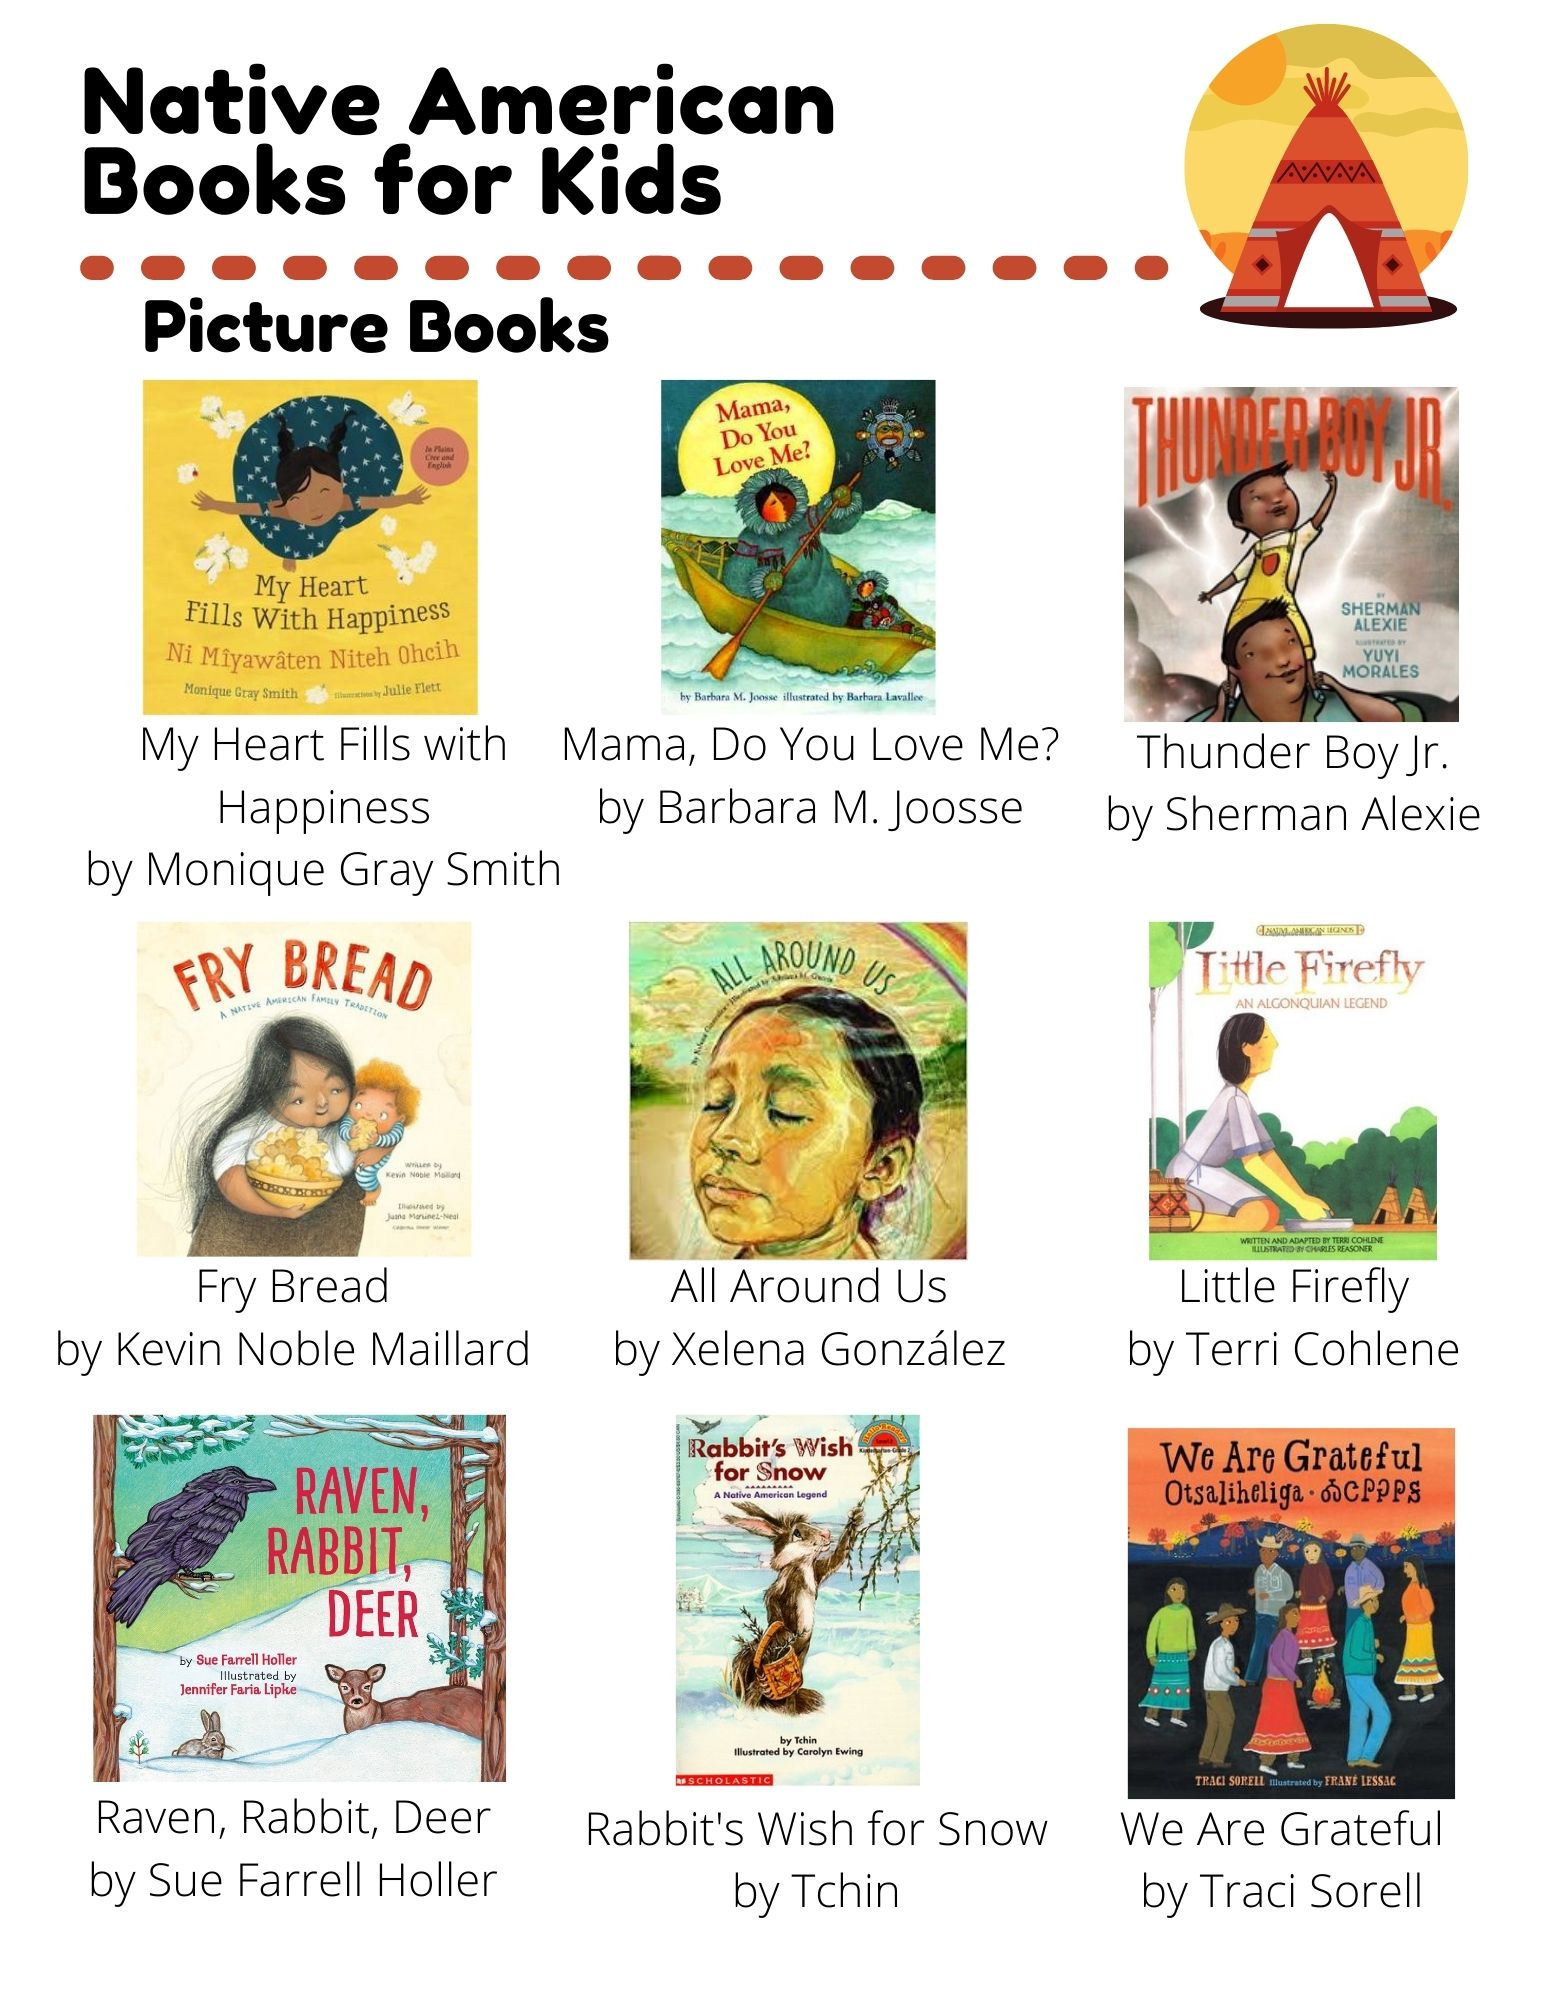 Native Americans: Picture Books: My Heart Fills with Happiness by Monique Gray Smith, Mama, Do You Love Me? by Barbara M. Joosse, Thunder Boy Jr. by Sherman Alexie, Fry Bread by Kevin Noble Maillard, All Around Us by Xelena González, Little Firefly by Terri Cohlene, Raven, Rabbit, Deer by Sue Farrell Holler, Rabbit's Wish for Snow by Tchin, We Are Grateful by Traci Sorell.  Chapter Books: Native American Heroes by Ann McGovern, The Birchbark House by Louise Erdrich, I Can Make This Promise by Christine Day, Meet Kaya by Janet Beeler Shaw, Enemy in the Fort by Sarah Masters Buckey. Non-Fiction: Red Cloud by S.D. Nelson, Before Columbus by Charles C. Mann, Welcome to Kaya's World 1764 by Dottie Raymer.